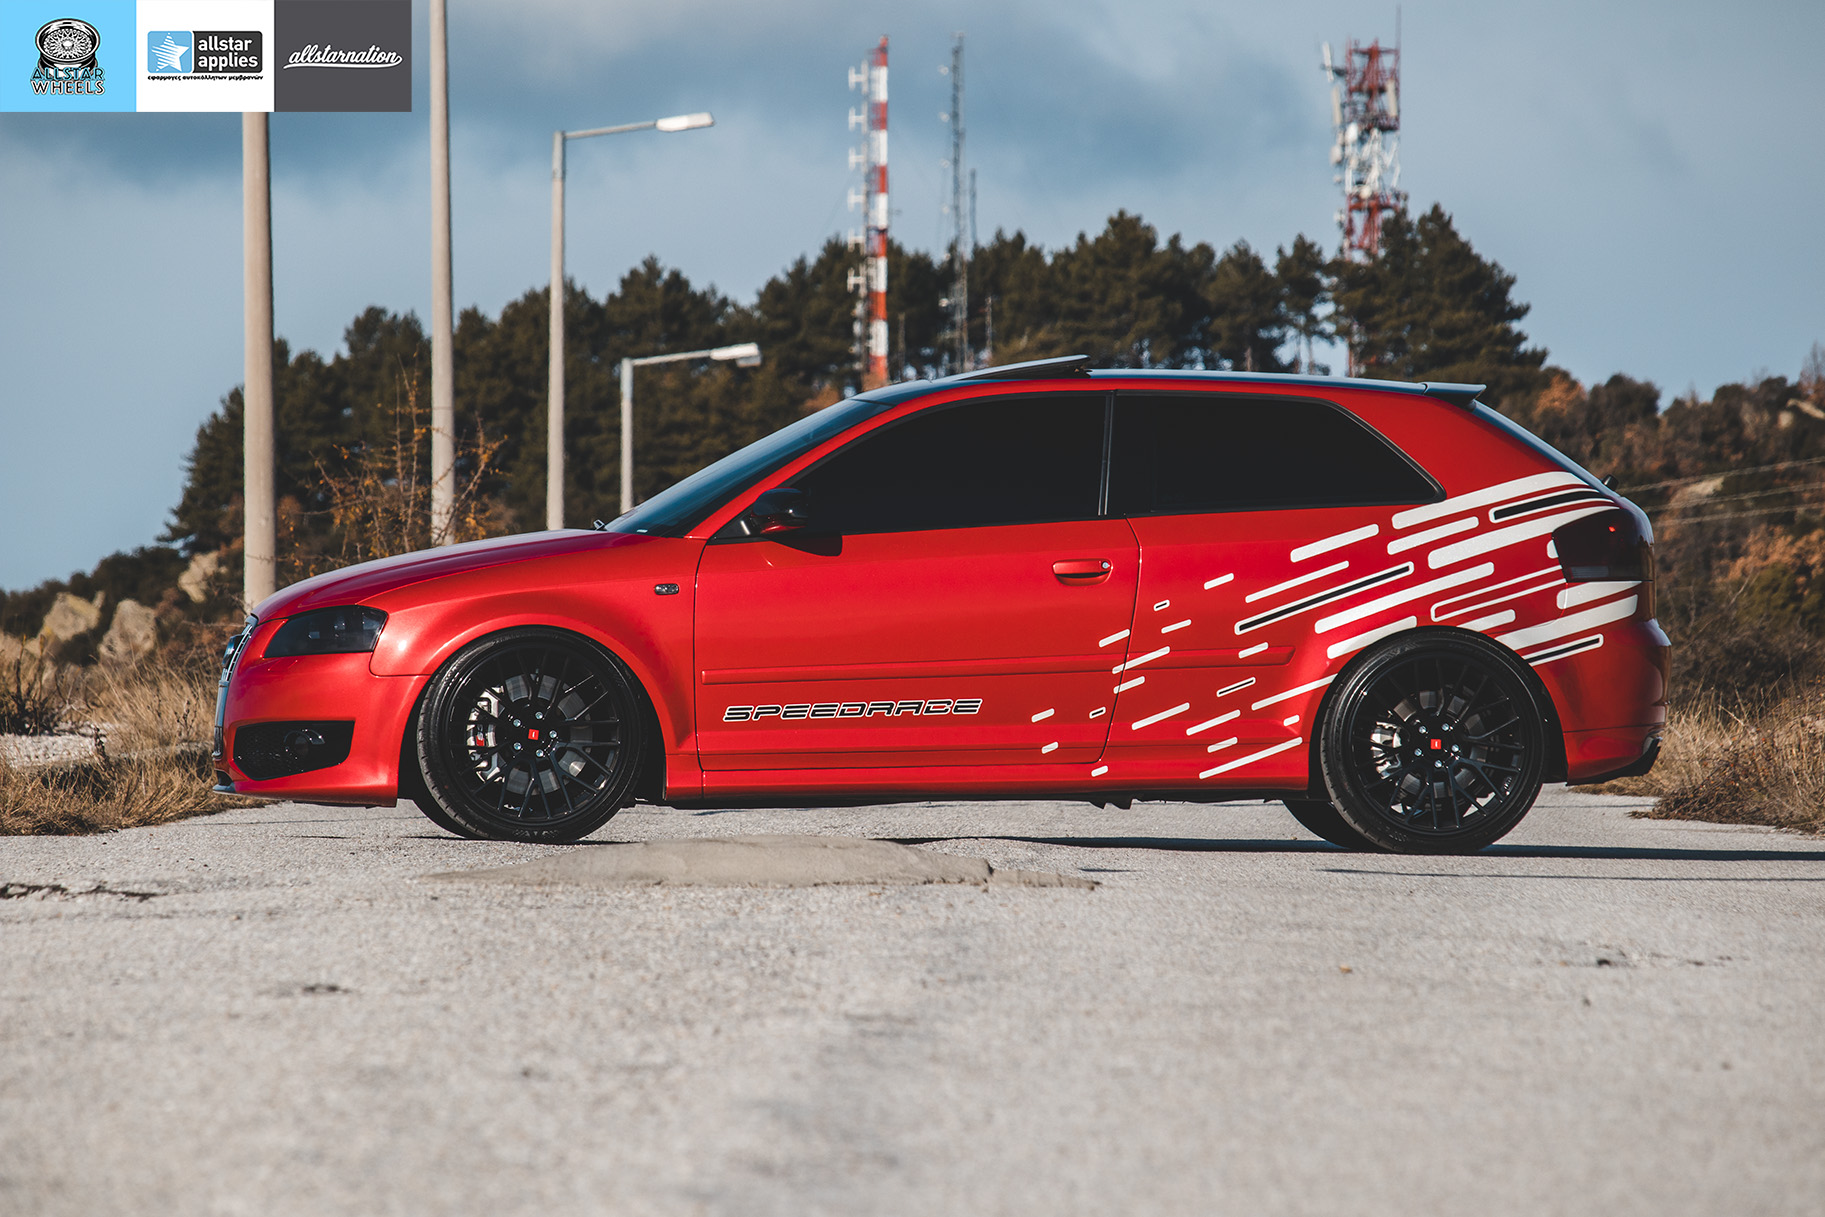 car wrapping audi allstar applies στη θεσσαλονίκη